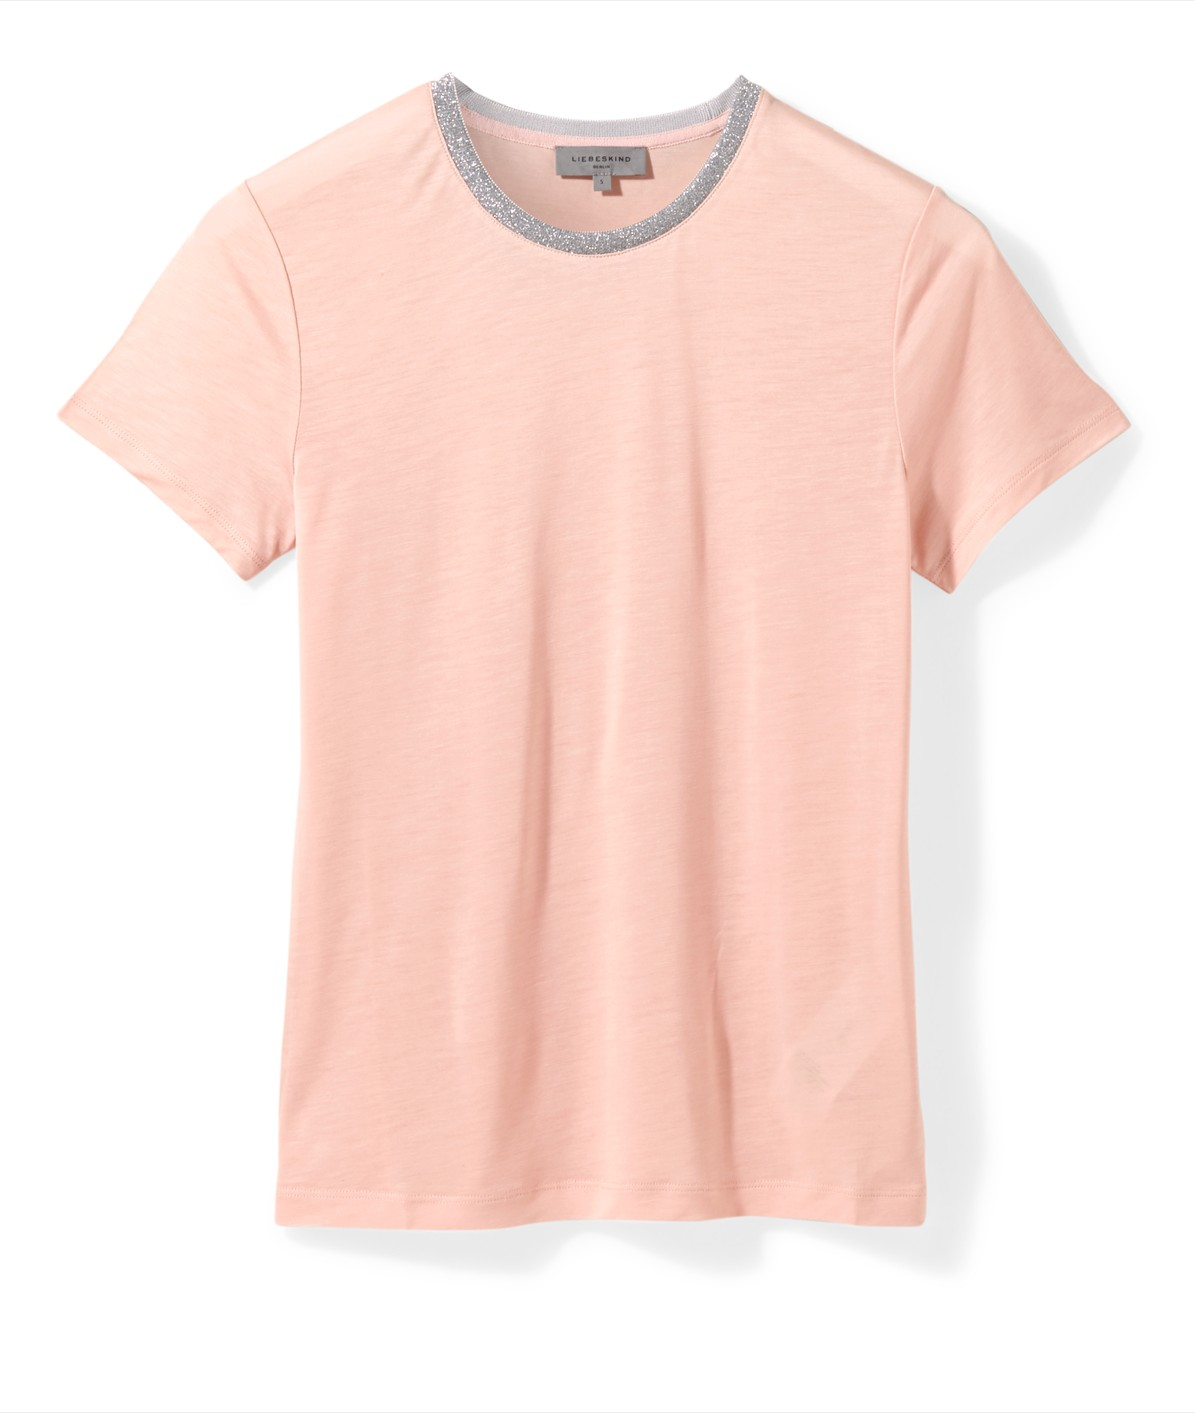 T-shirt with a sparkly neckline from liebeskind